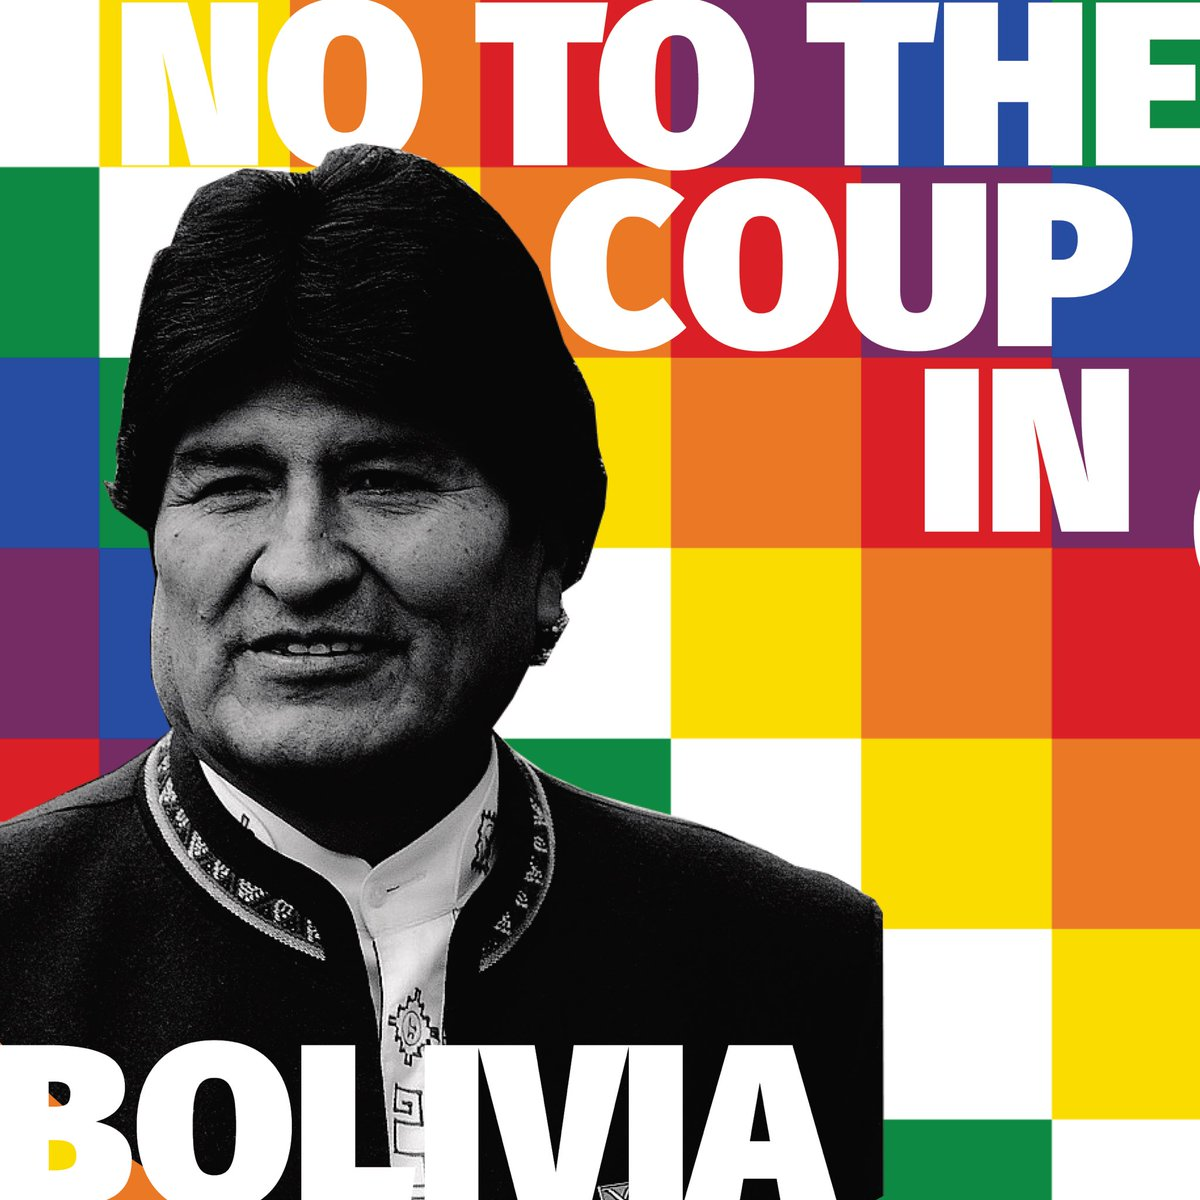 NO to the coup in #Bolivia. Protect the lives of leftist activists. #ElMundoConEvo <br>http://pic.twitter.com/bjO6F9LmSq